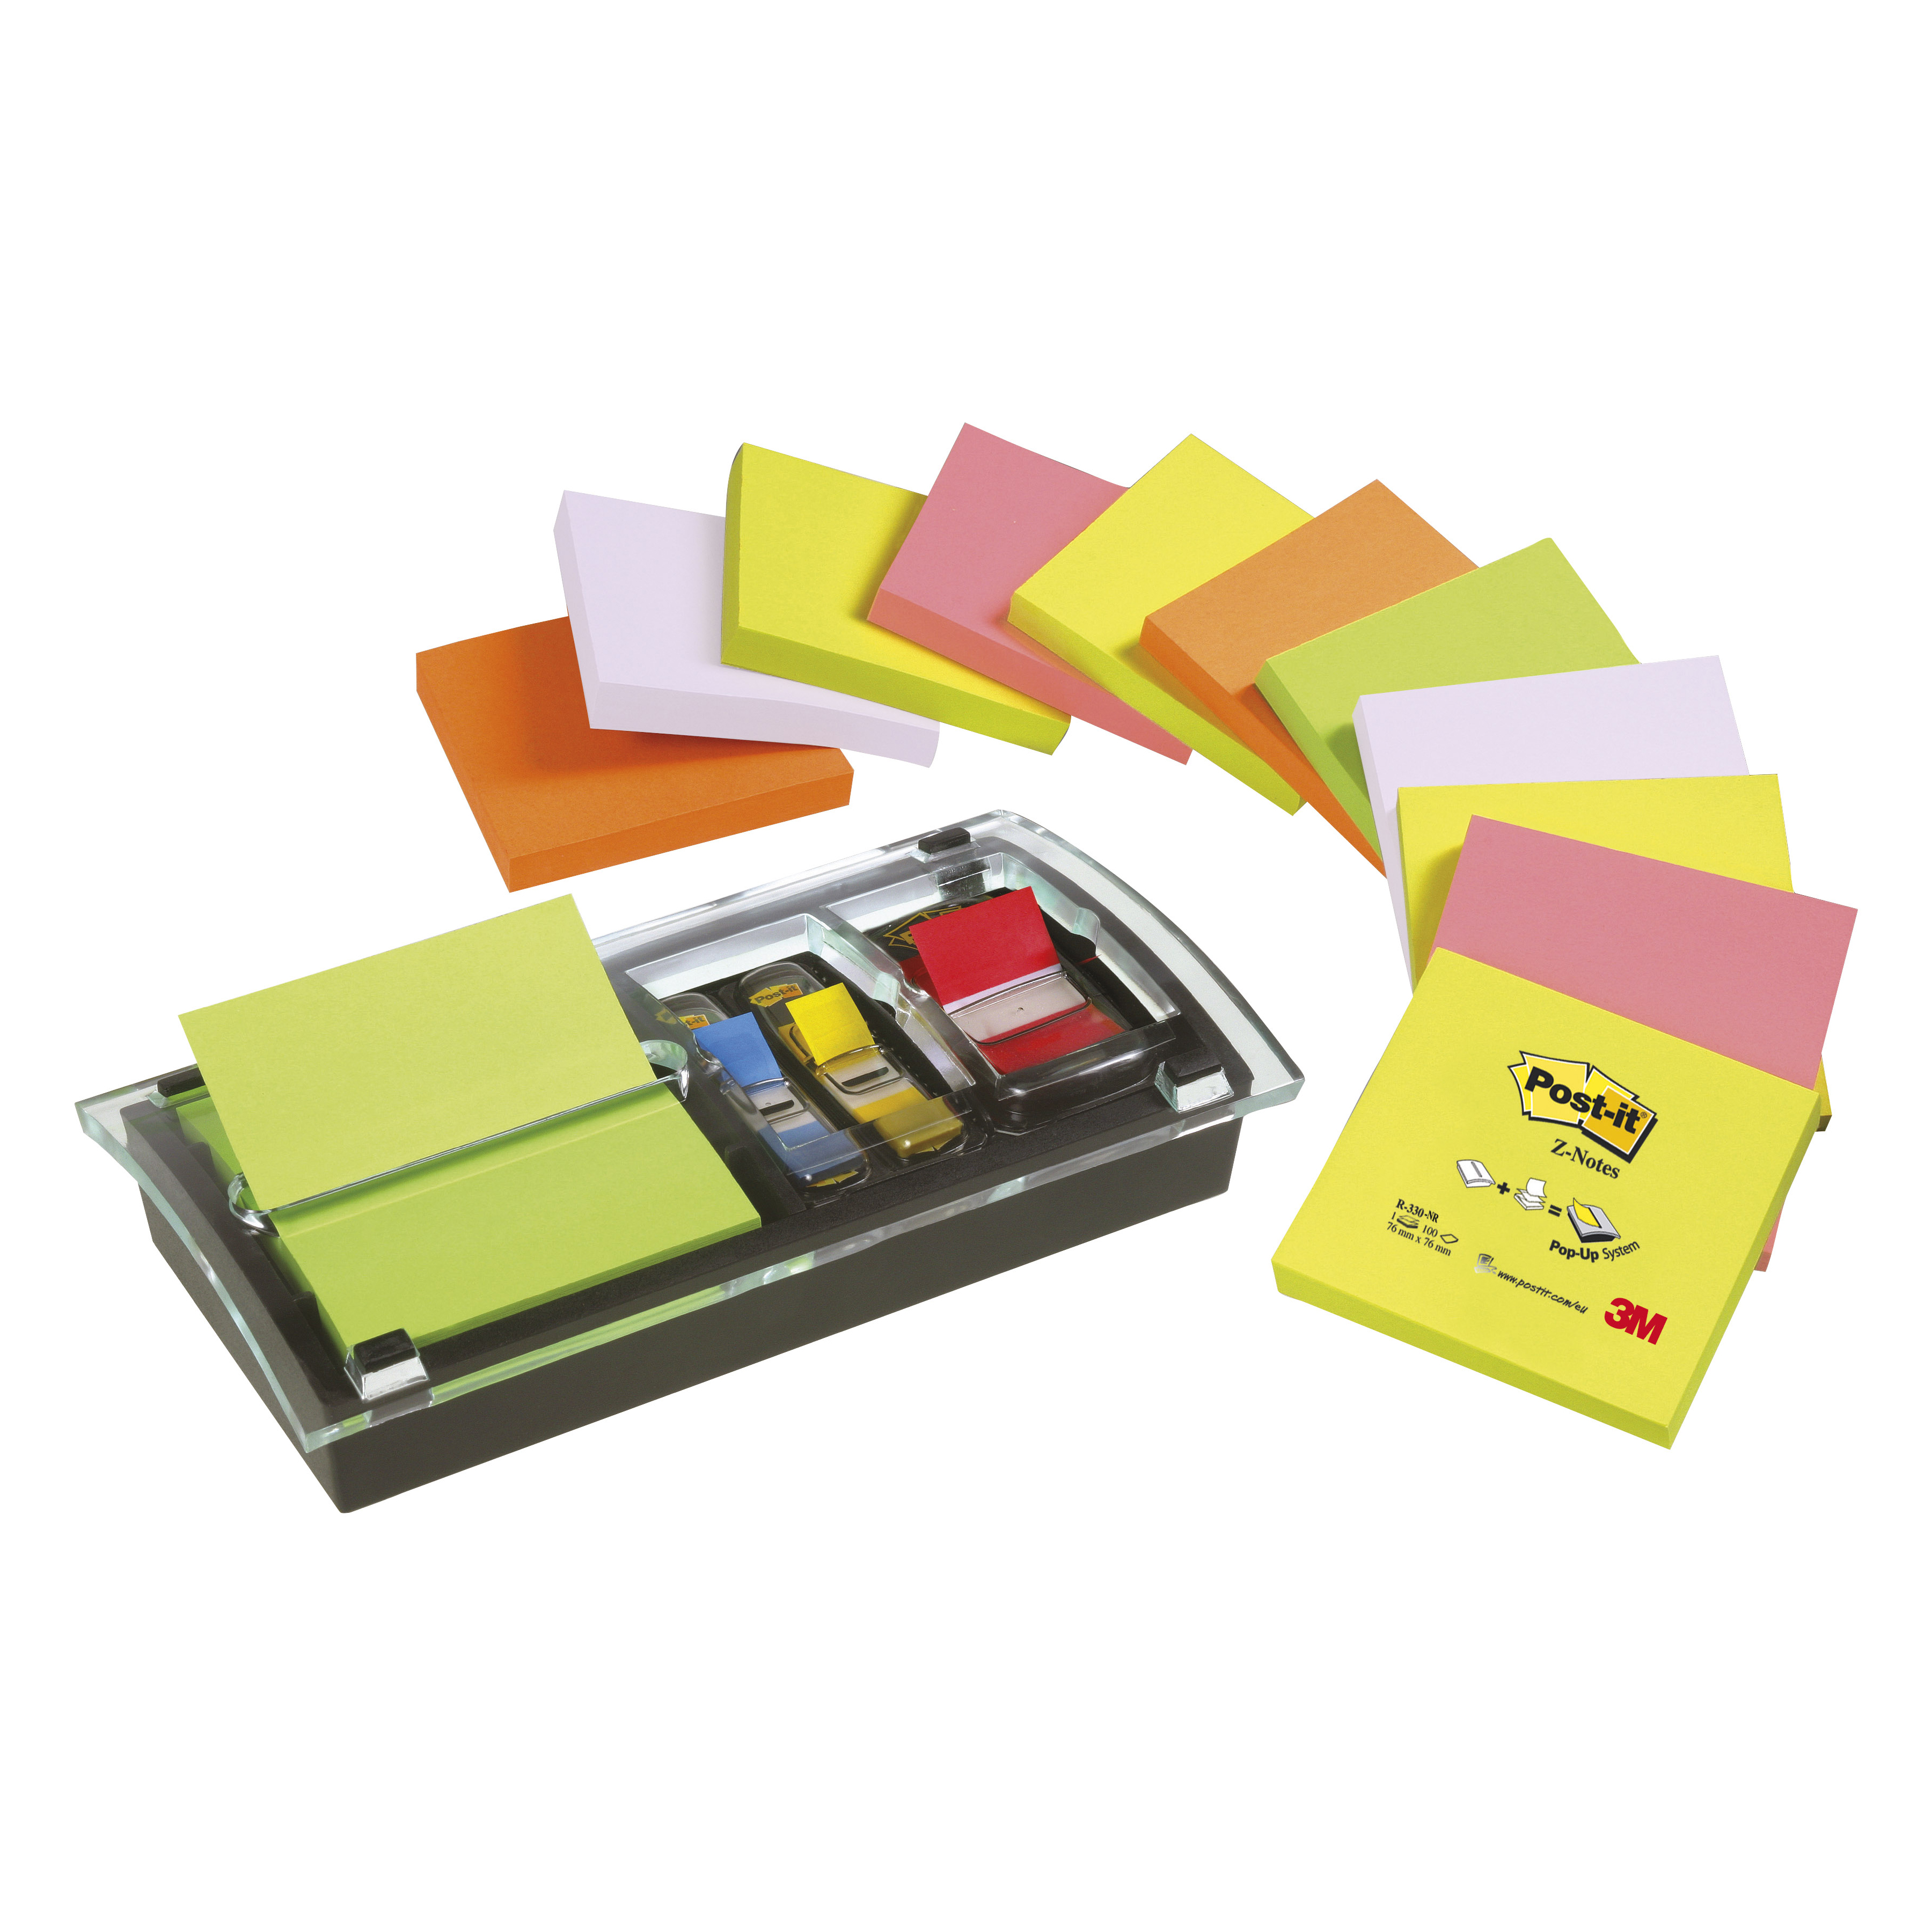 Post-it Note Value Pack 3x3 Ref DS100-VP Pack 12 and Free Dispenser